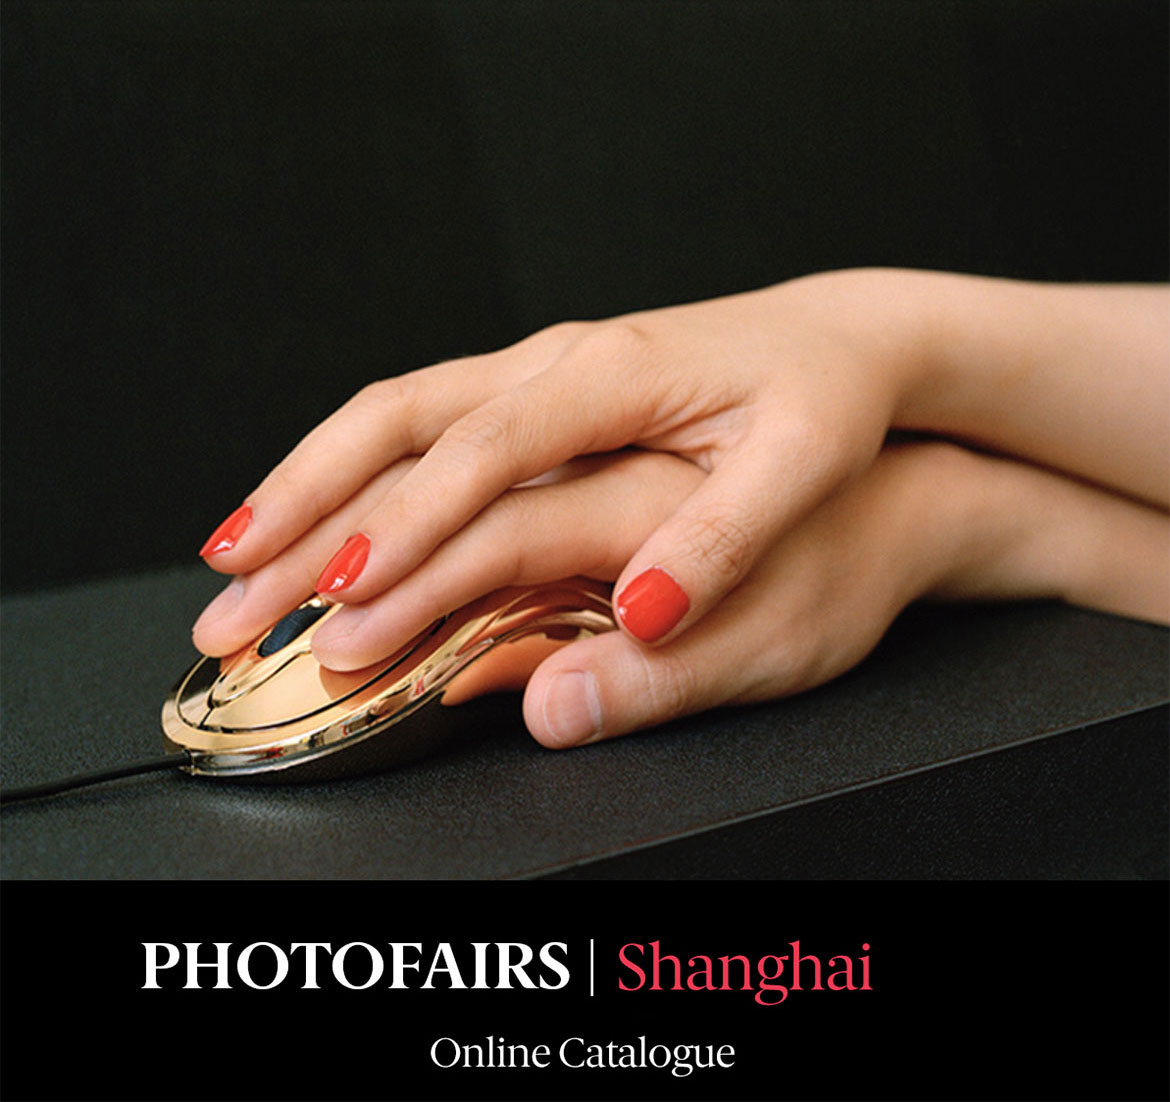 PHOTOFAIRS | Shanghai